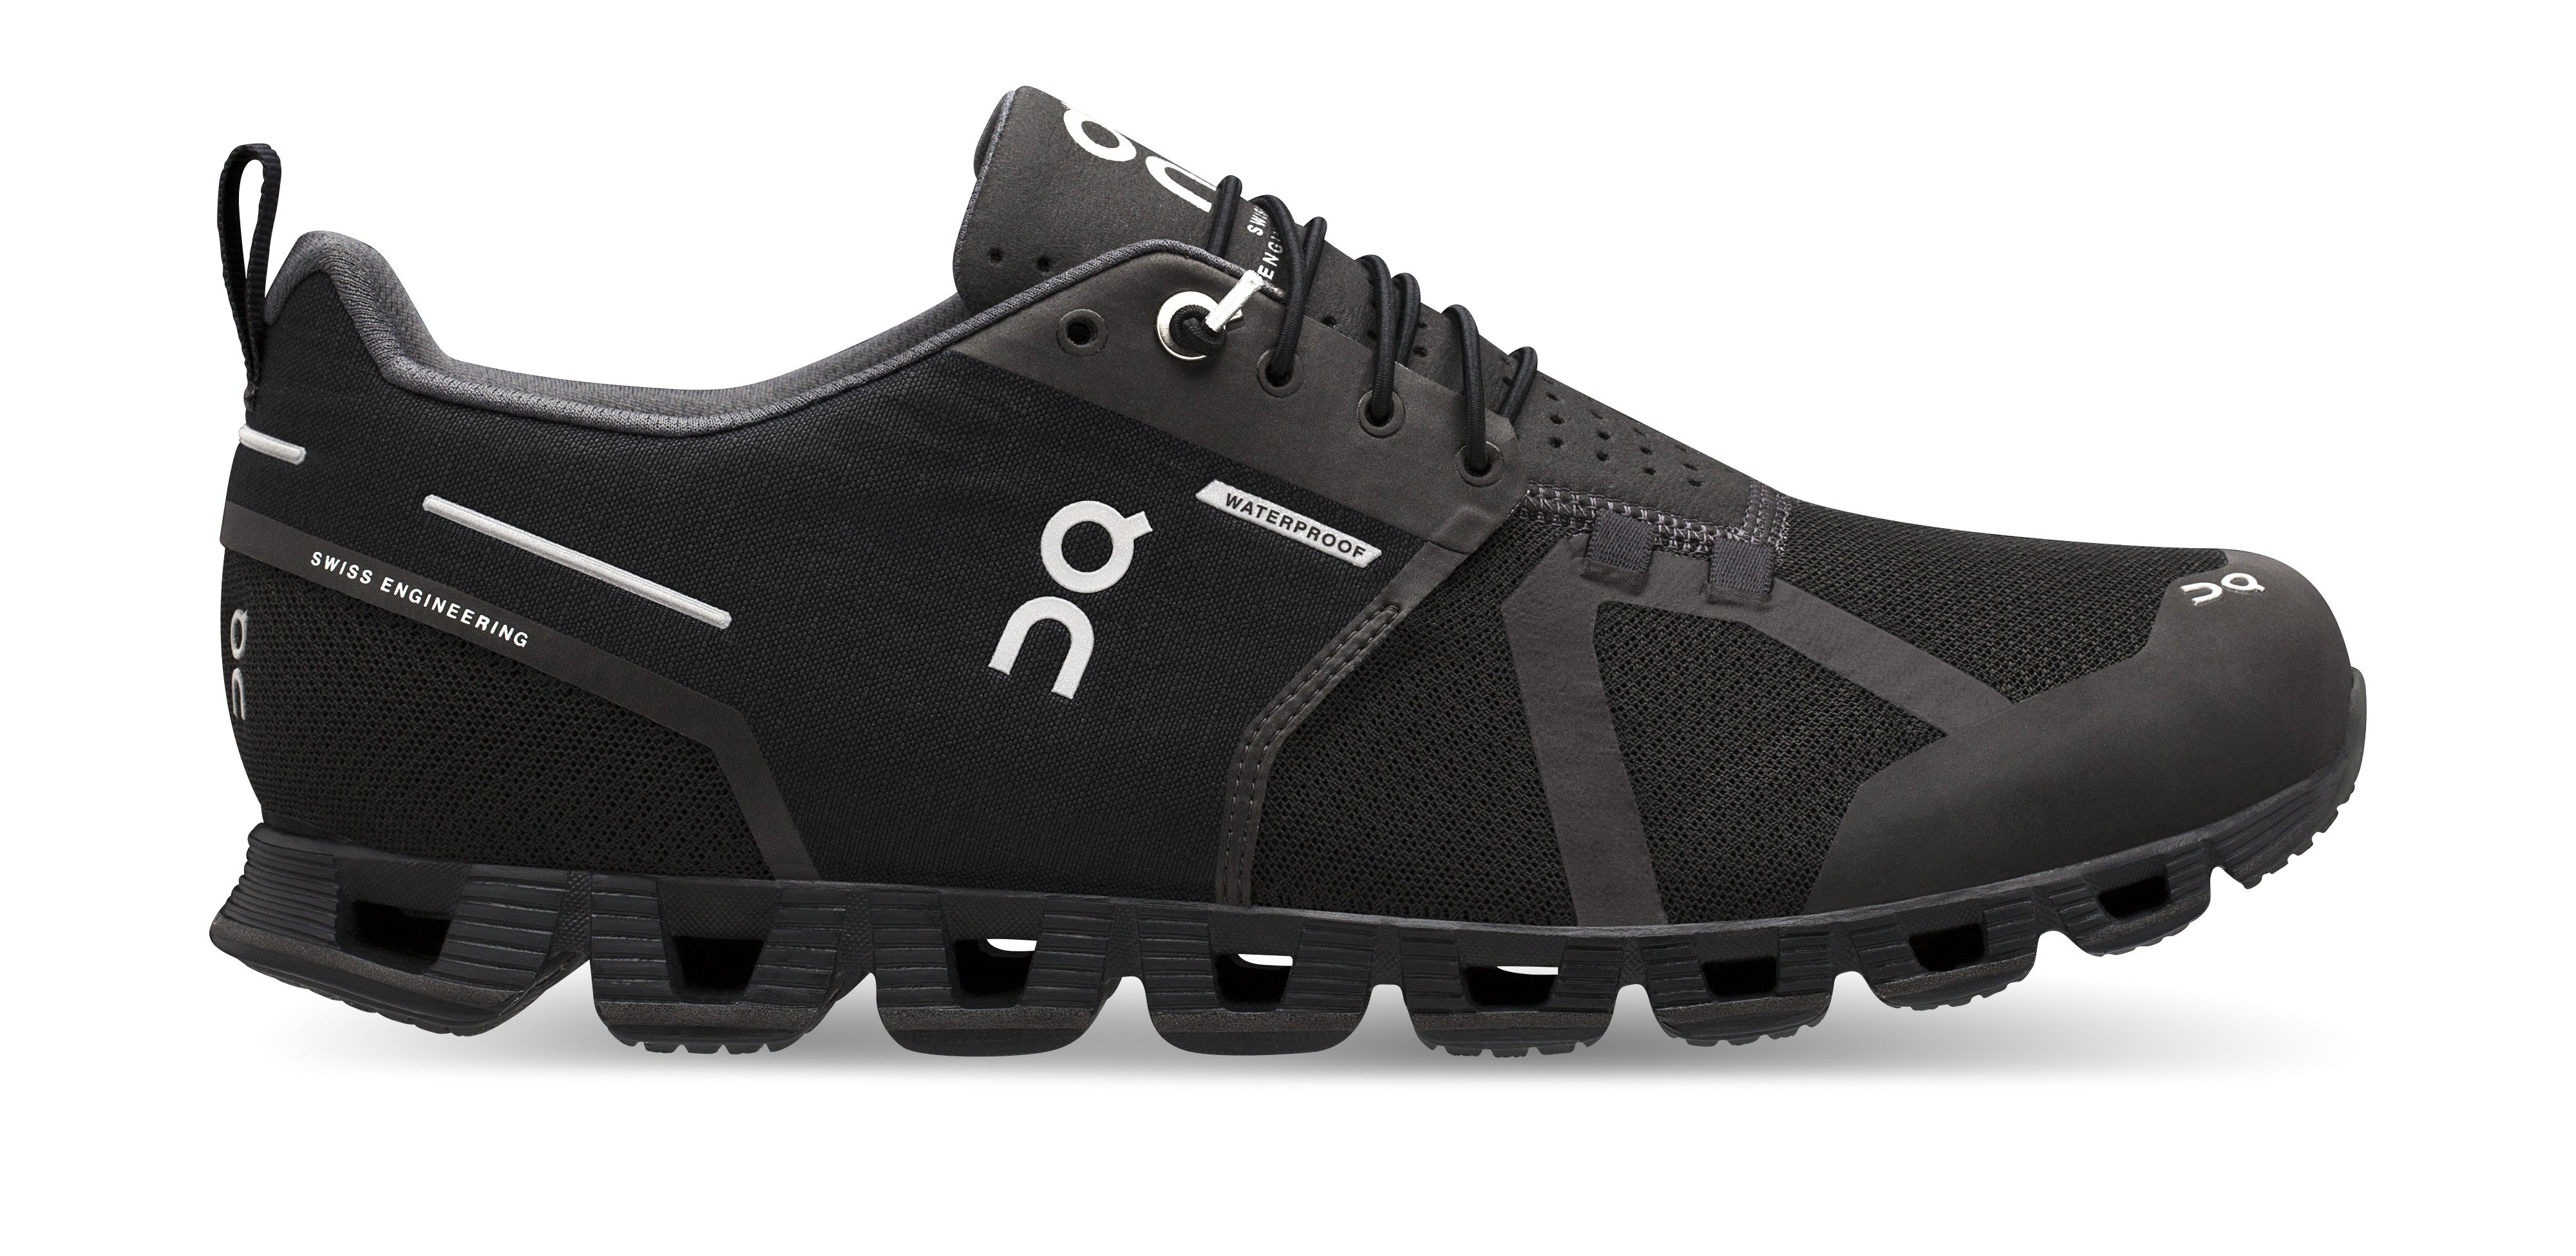 ON Men's Cloud Waterproof Black/Lunar